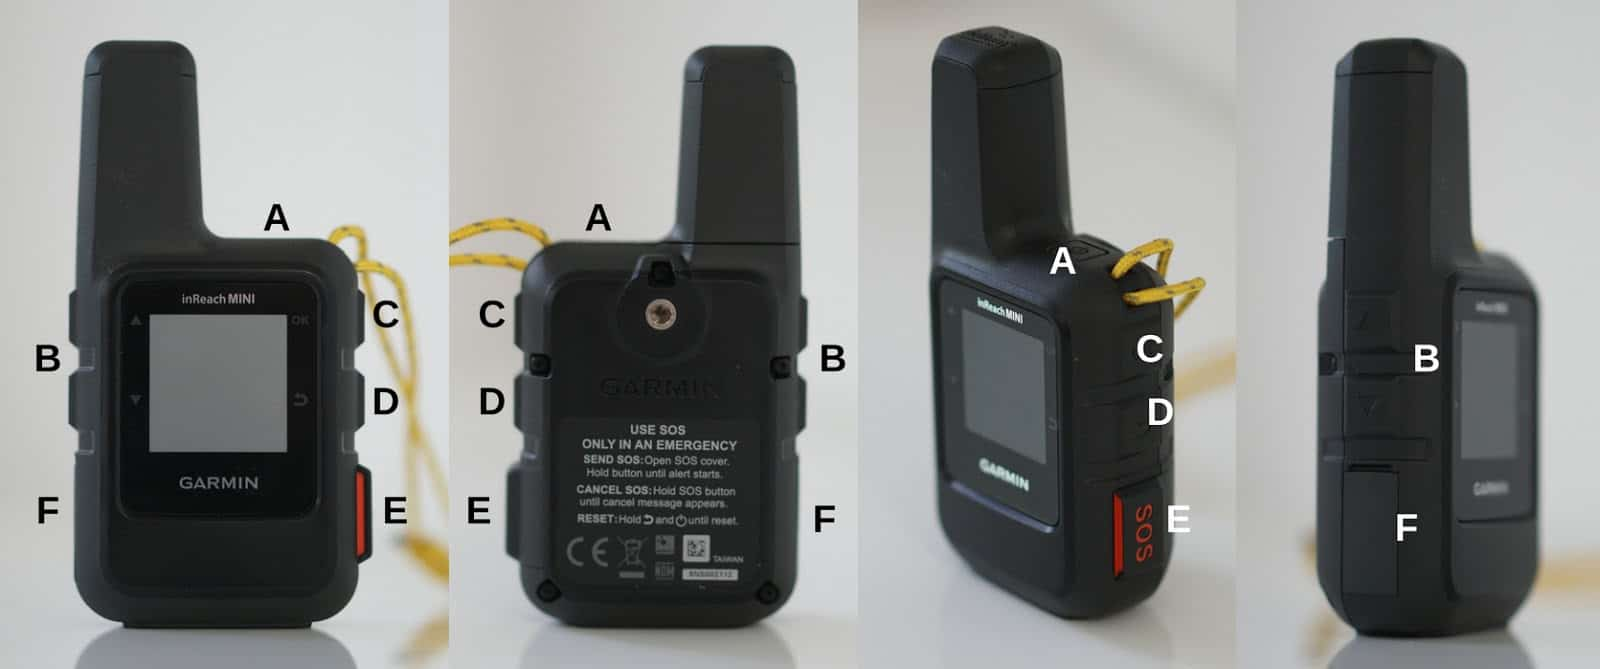 garmin inreach mini button layout 1